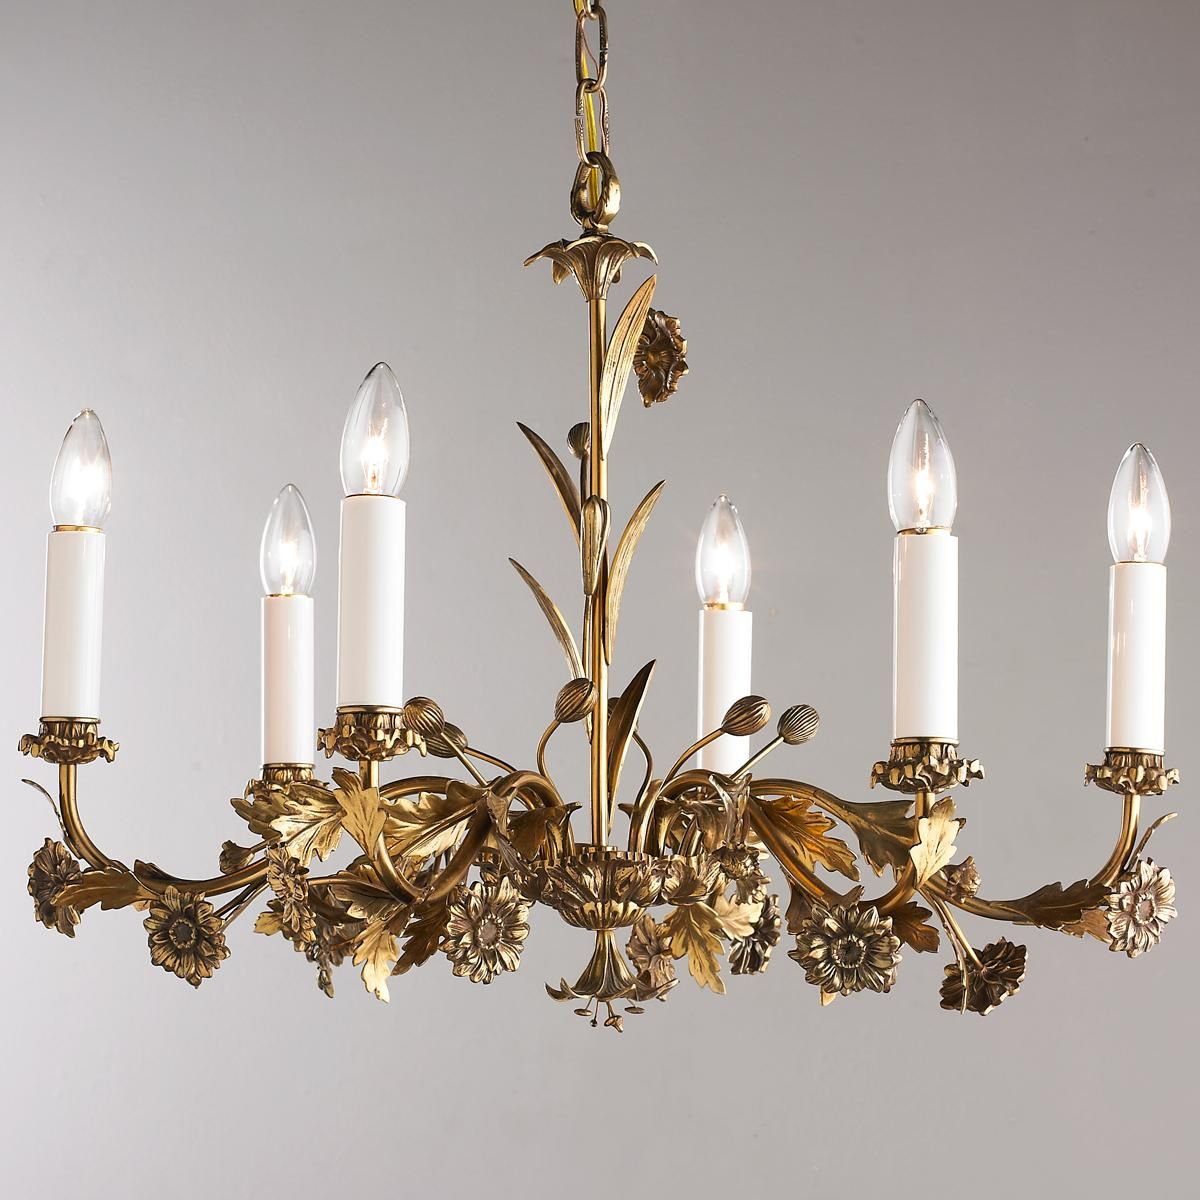 Antique 6 Arm Floral Brass Chandelier Antique Brass Chandelier